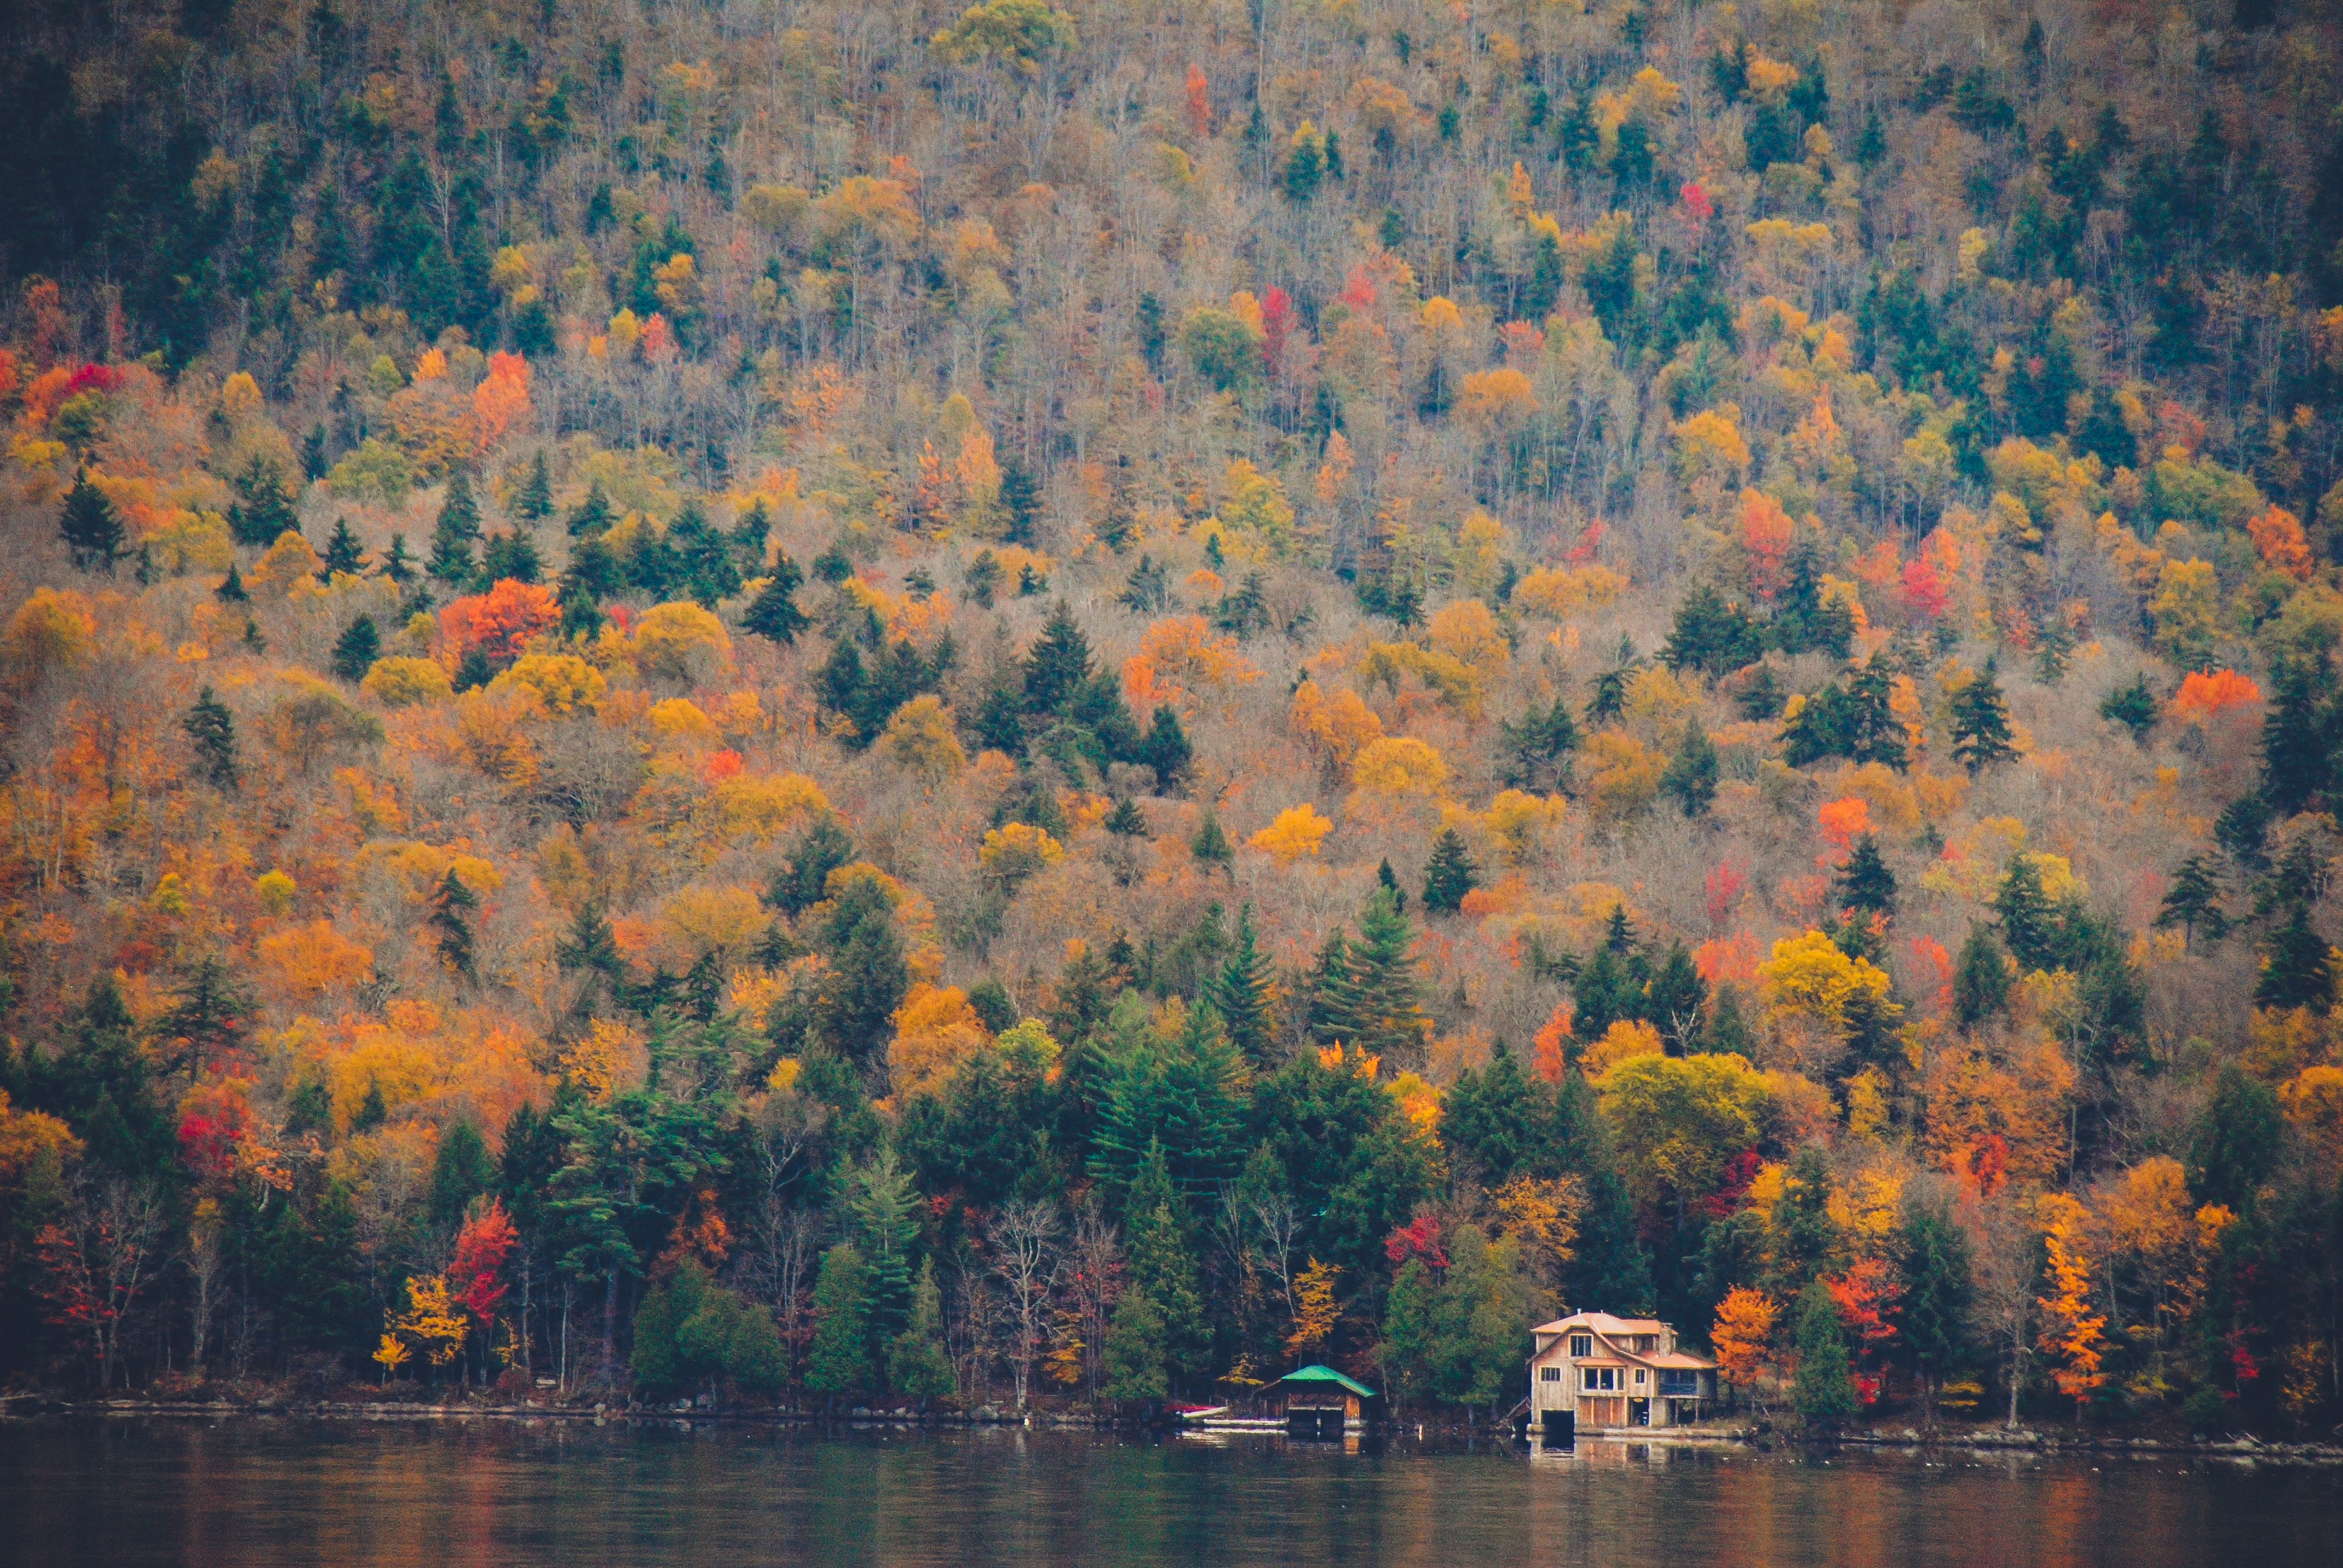 landscape photo of mountains full of trees near body of water during daytime